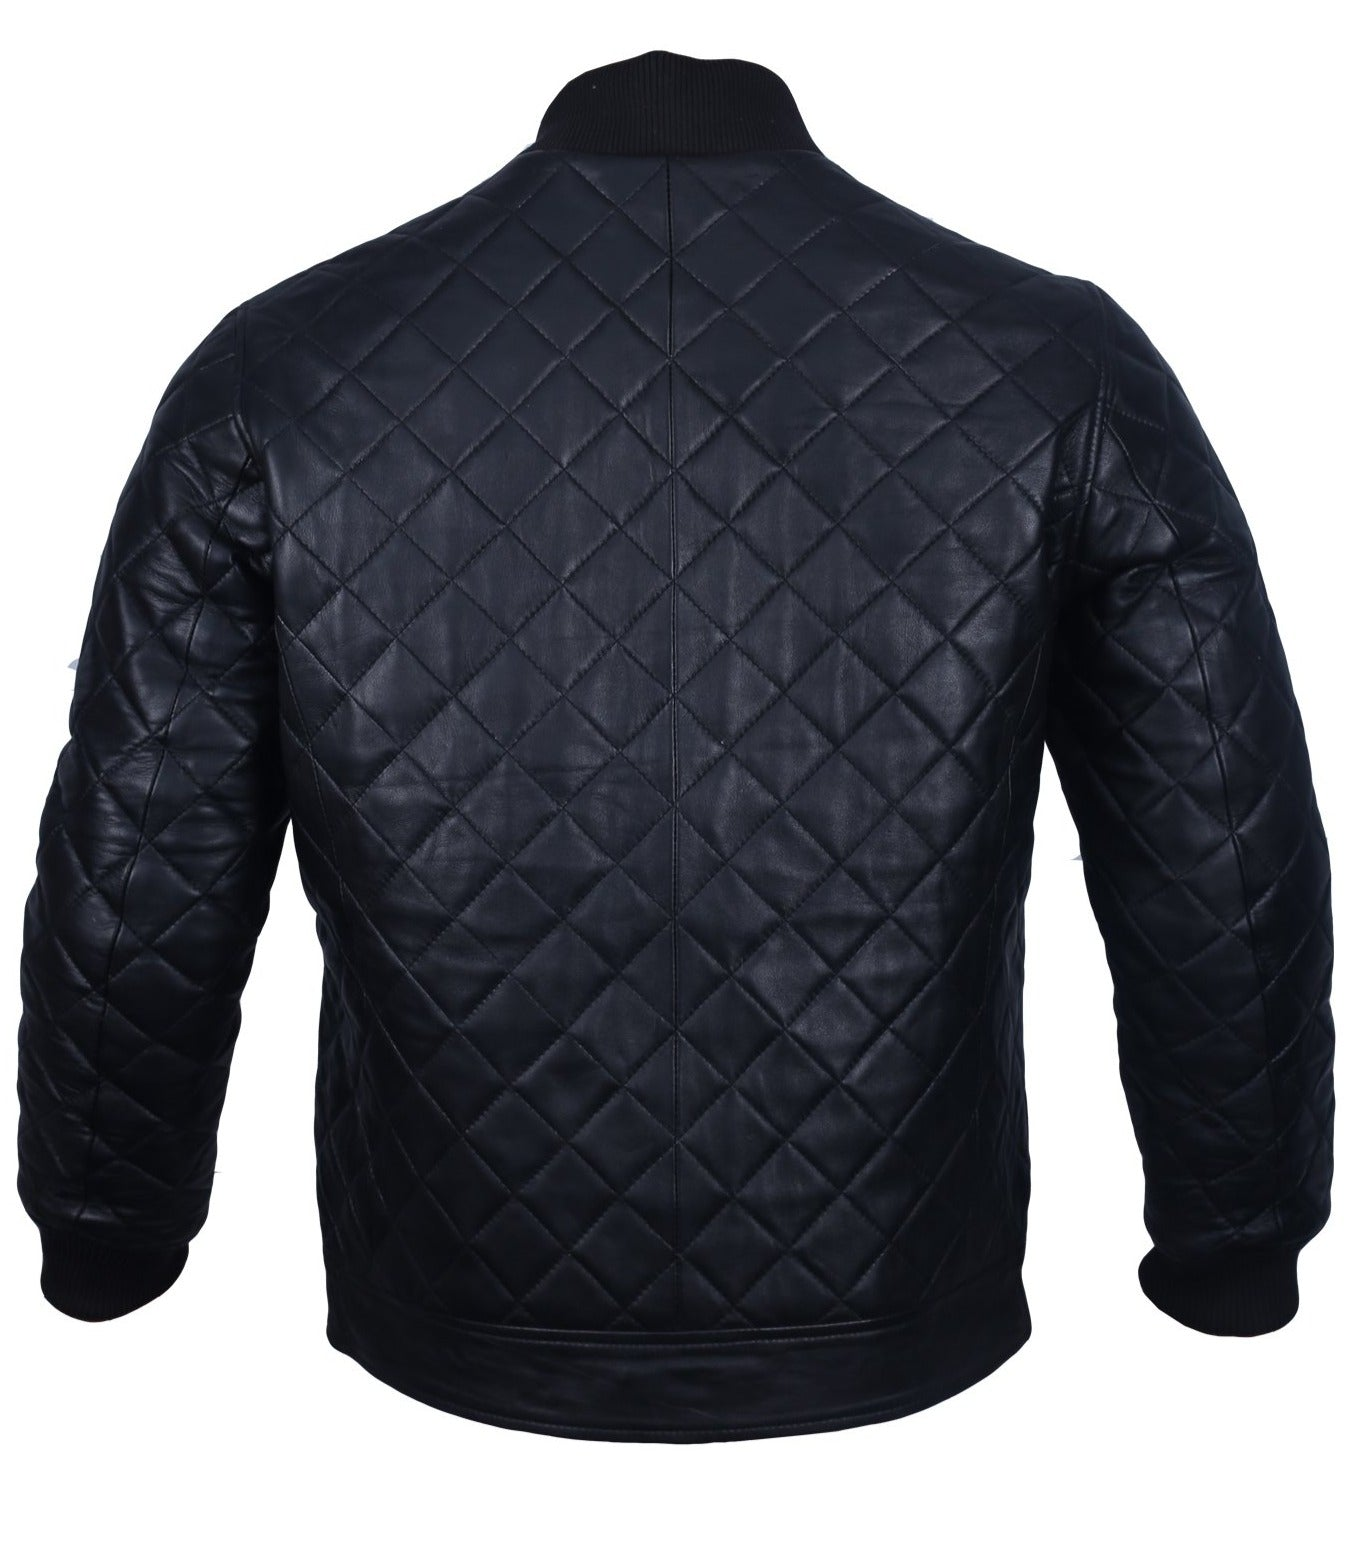 Leather Bomber Jacket Mens Diamond Quilted